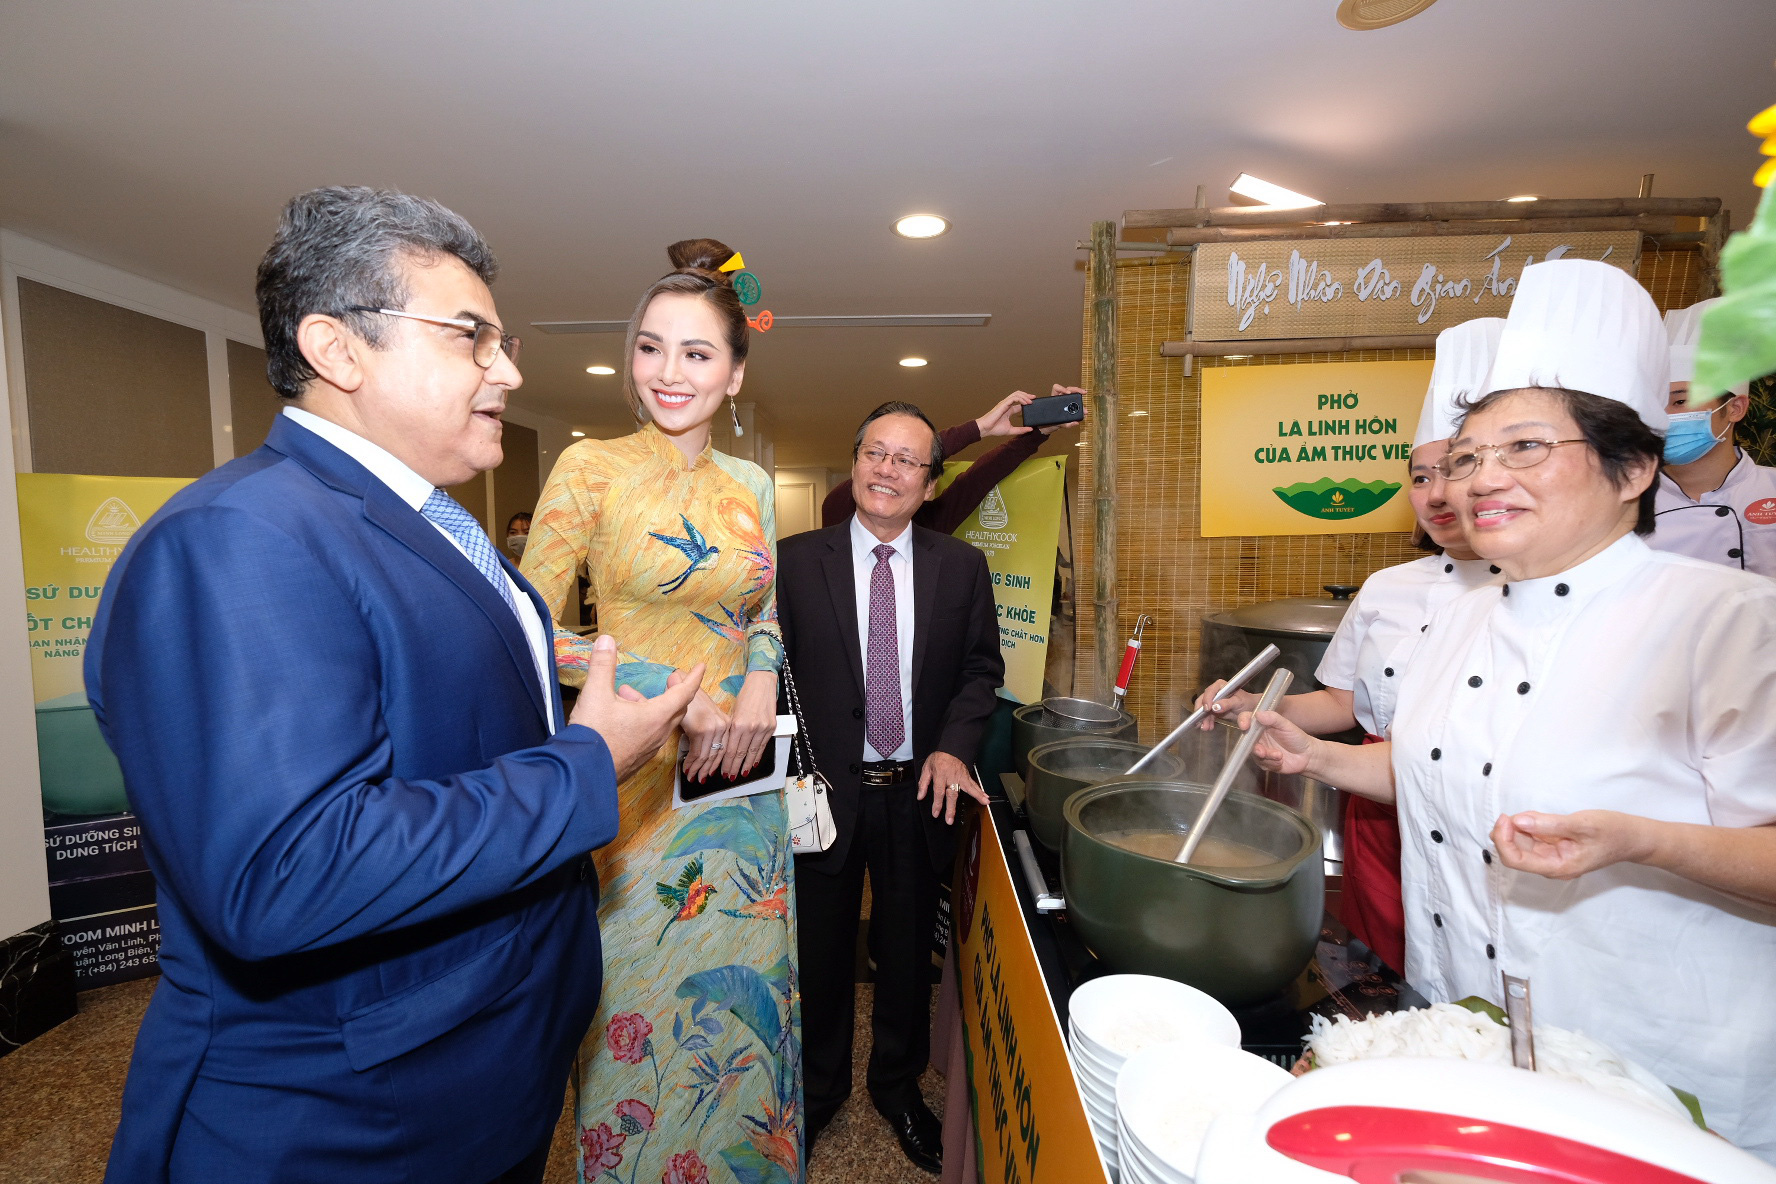 'The Story ofPho' gala dinner organized for diplomatic missions in Hanoi